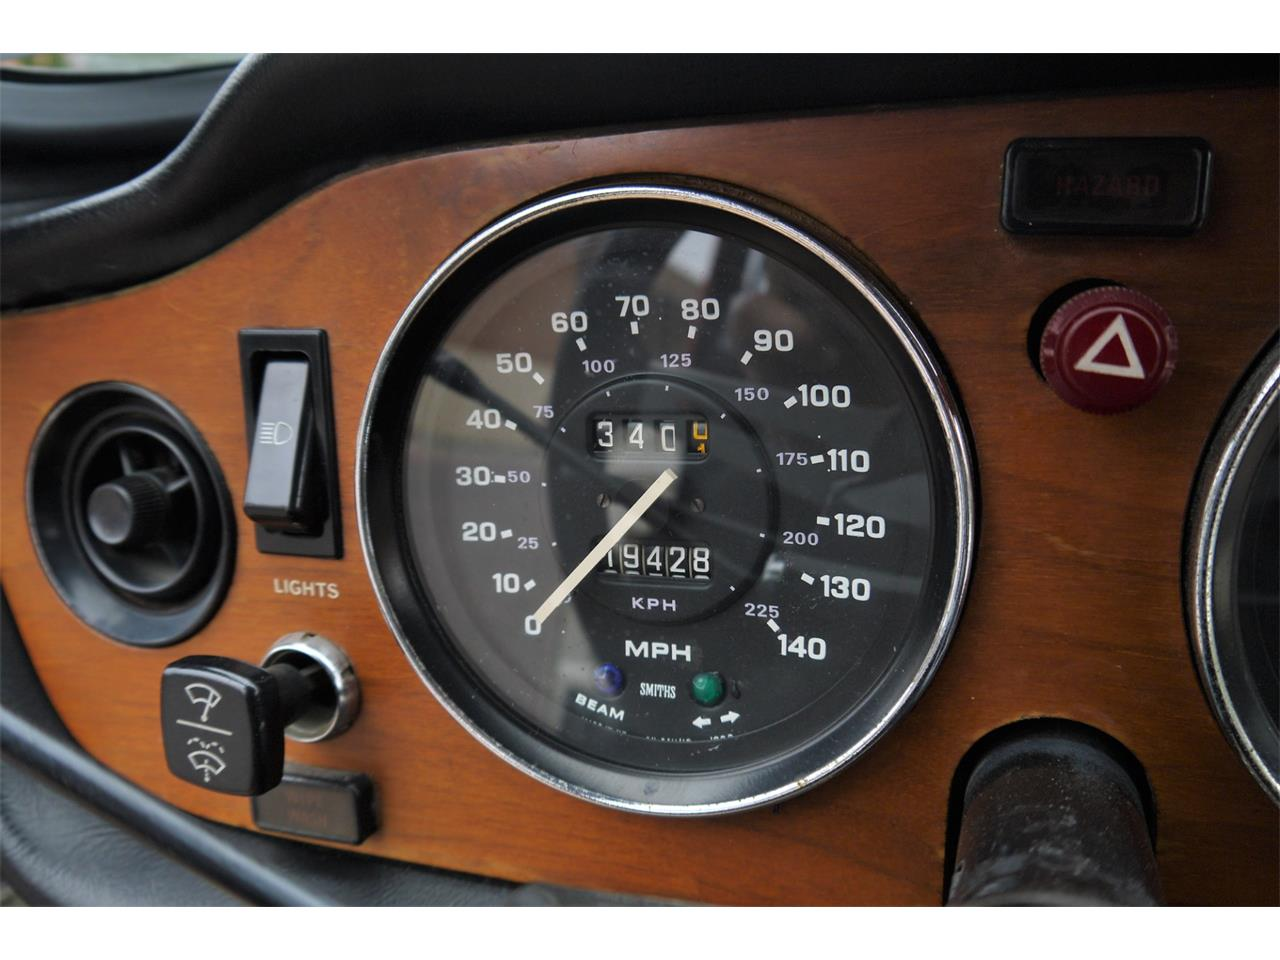 1976 Triumph TR6 for sale in Brentwood, TN – photo 6